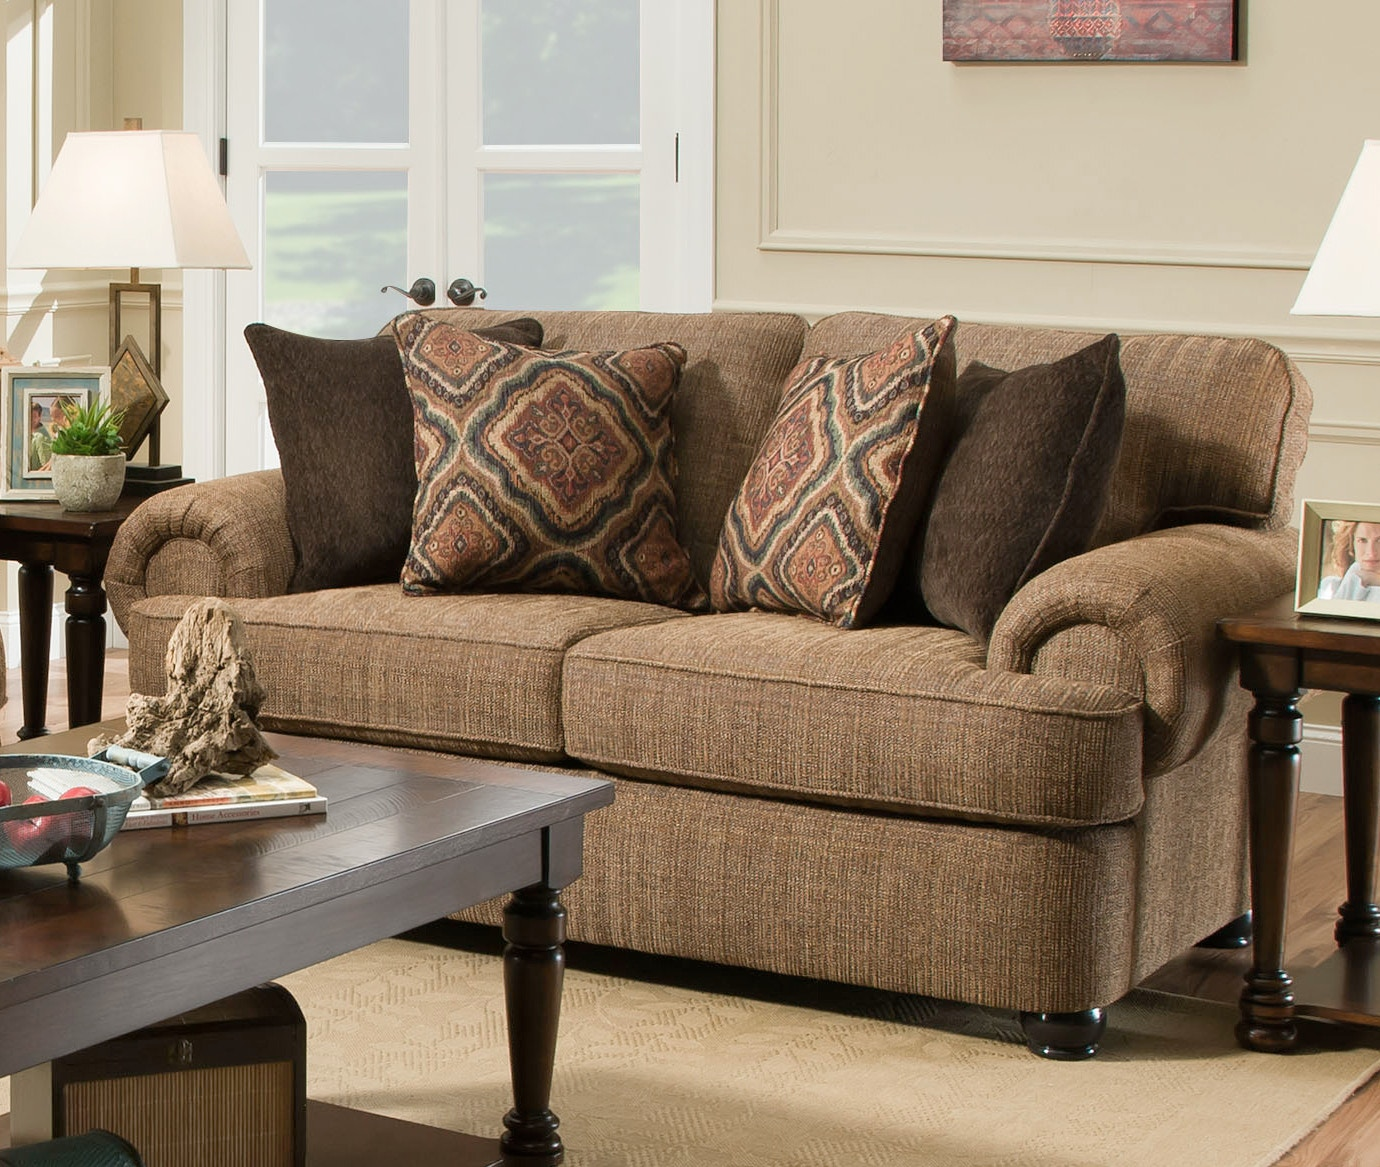 100 Simmons Furniture Store Near Me Discount Living Room Furniture Sets American Freight